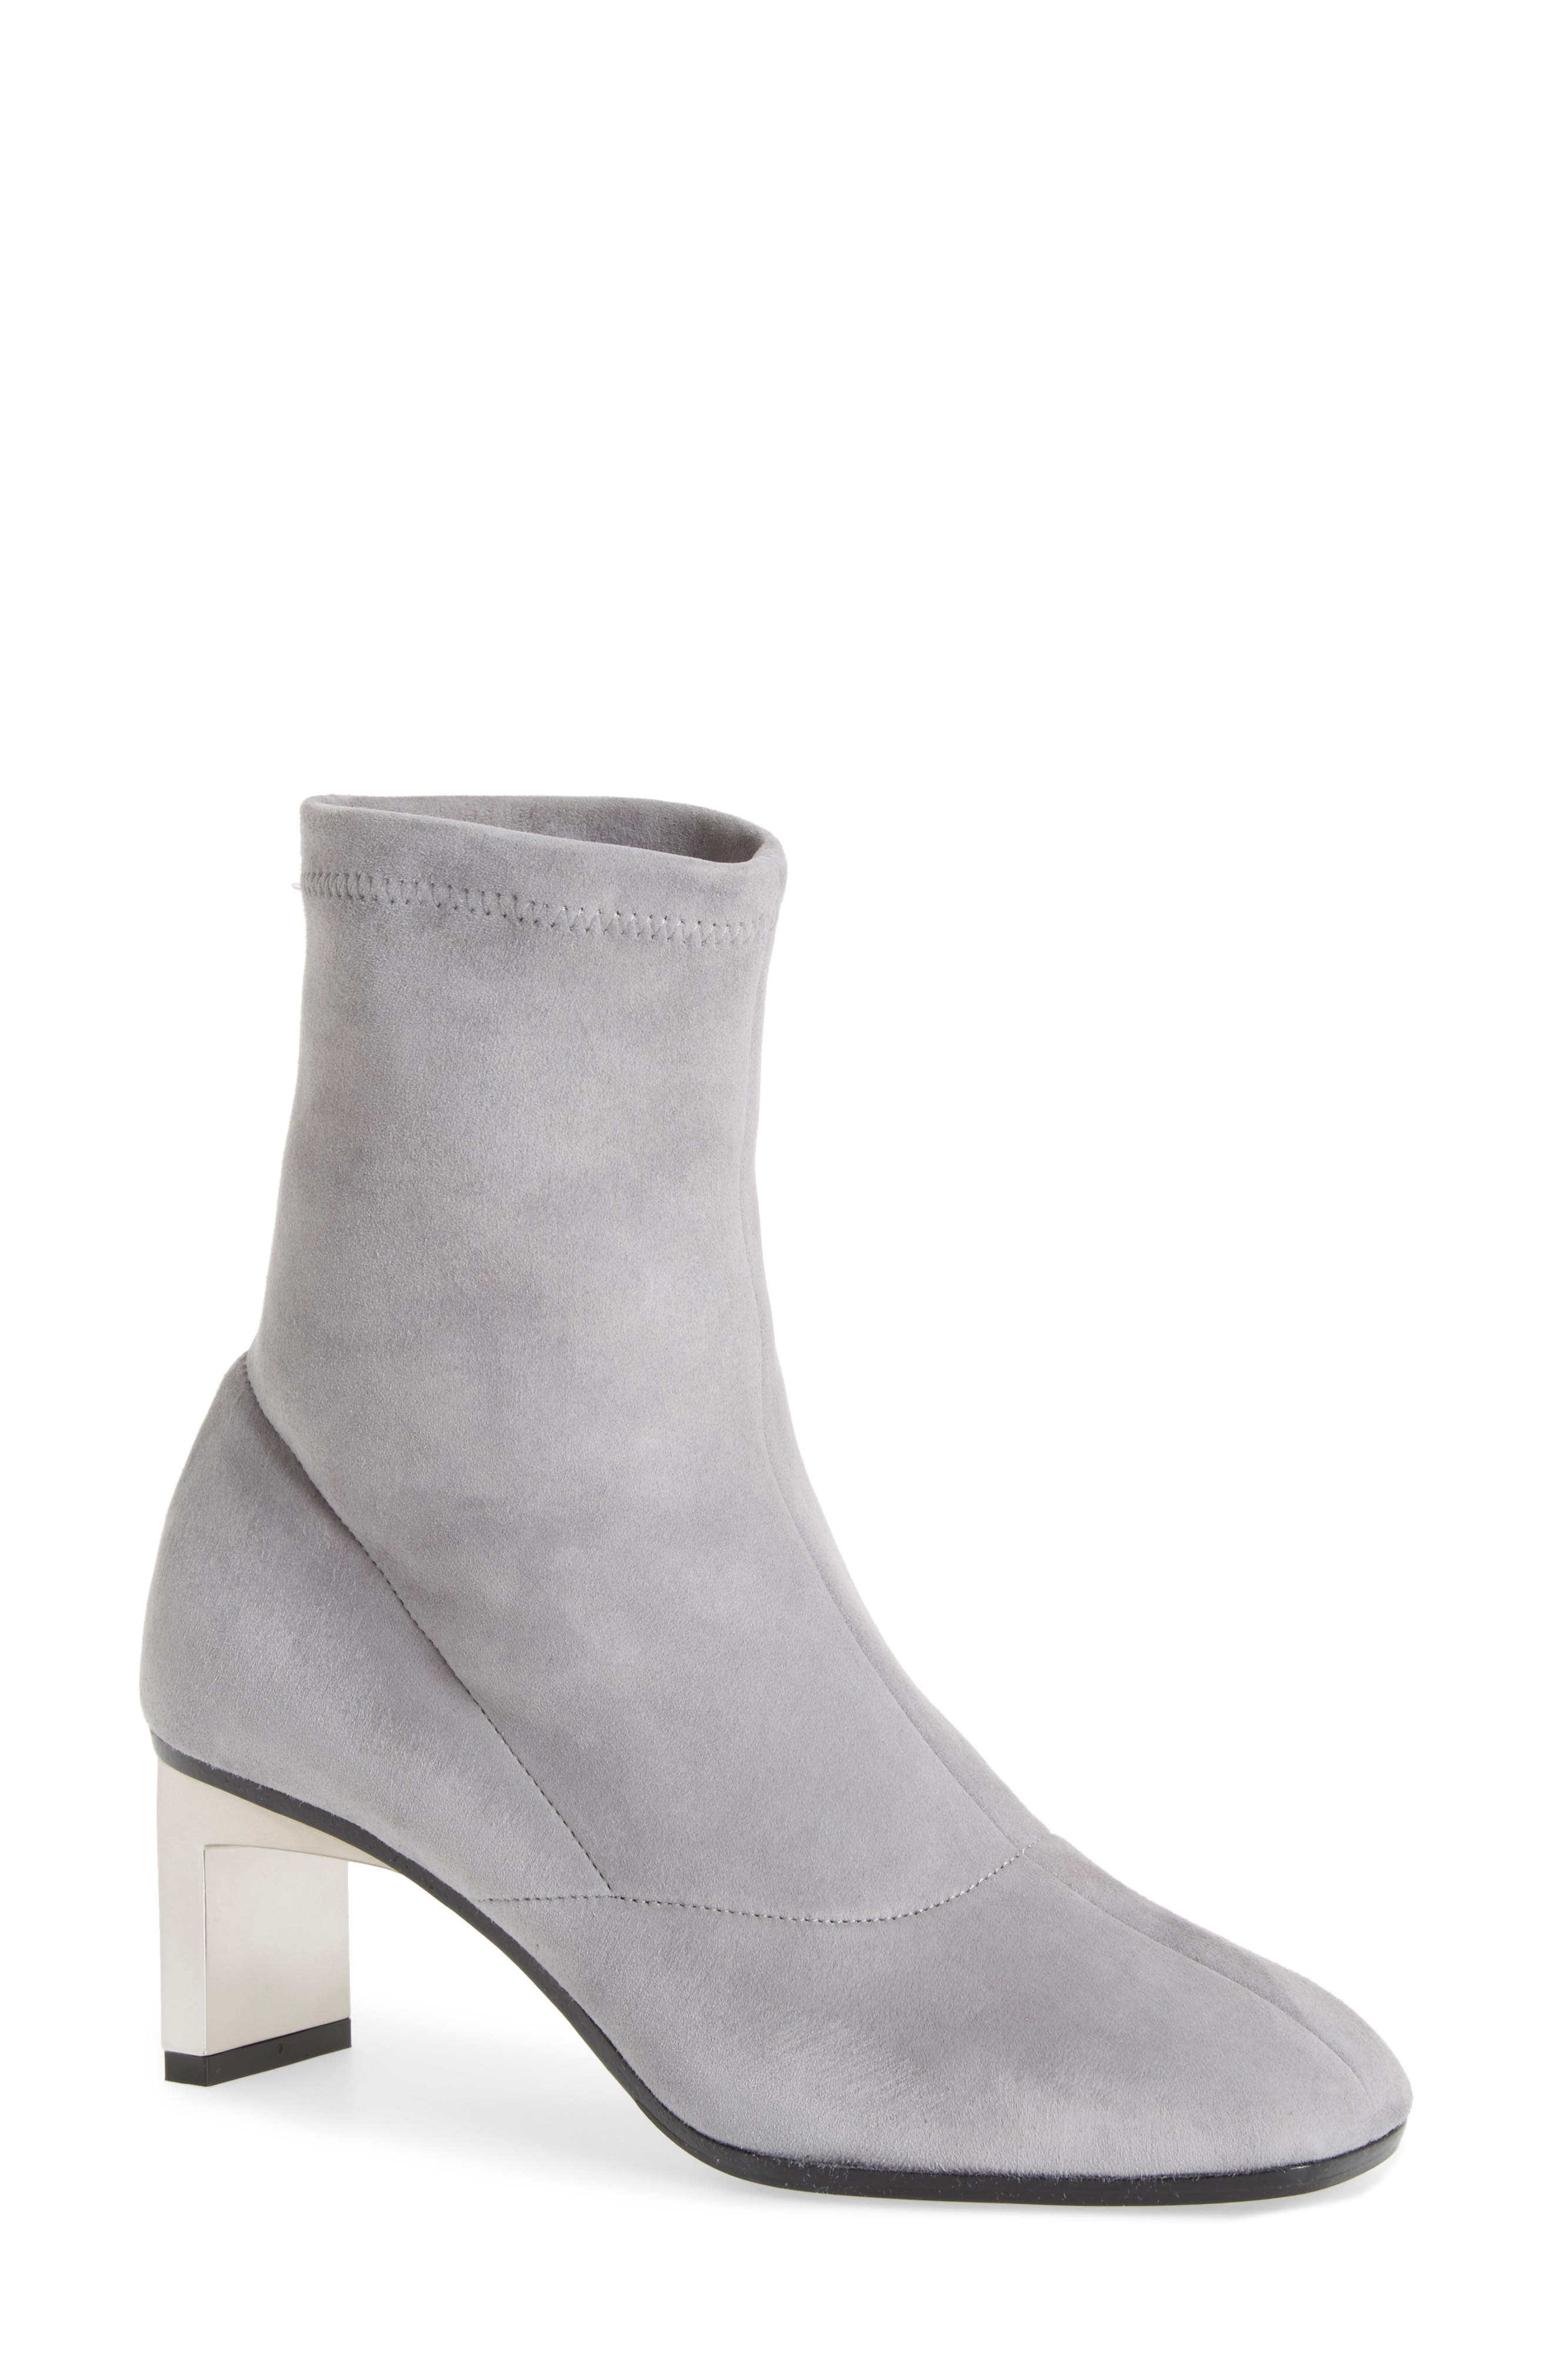 3.1 Phillip Lim Blade Boot (Women)